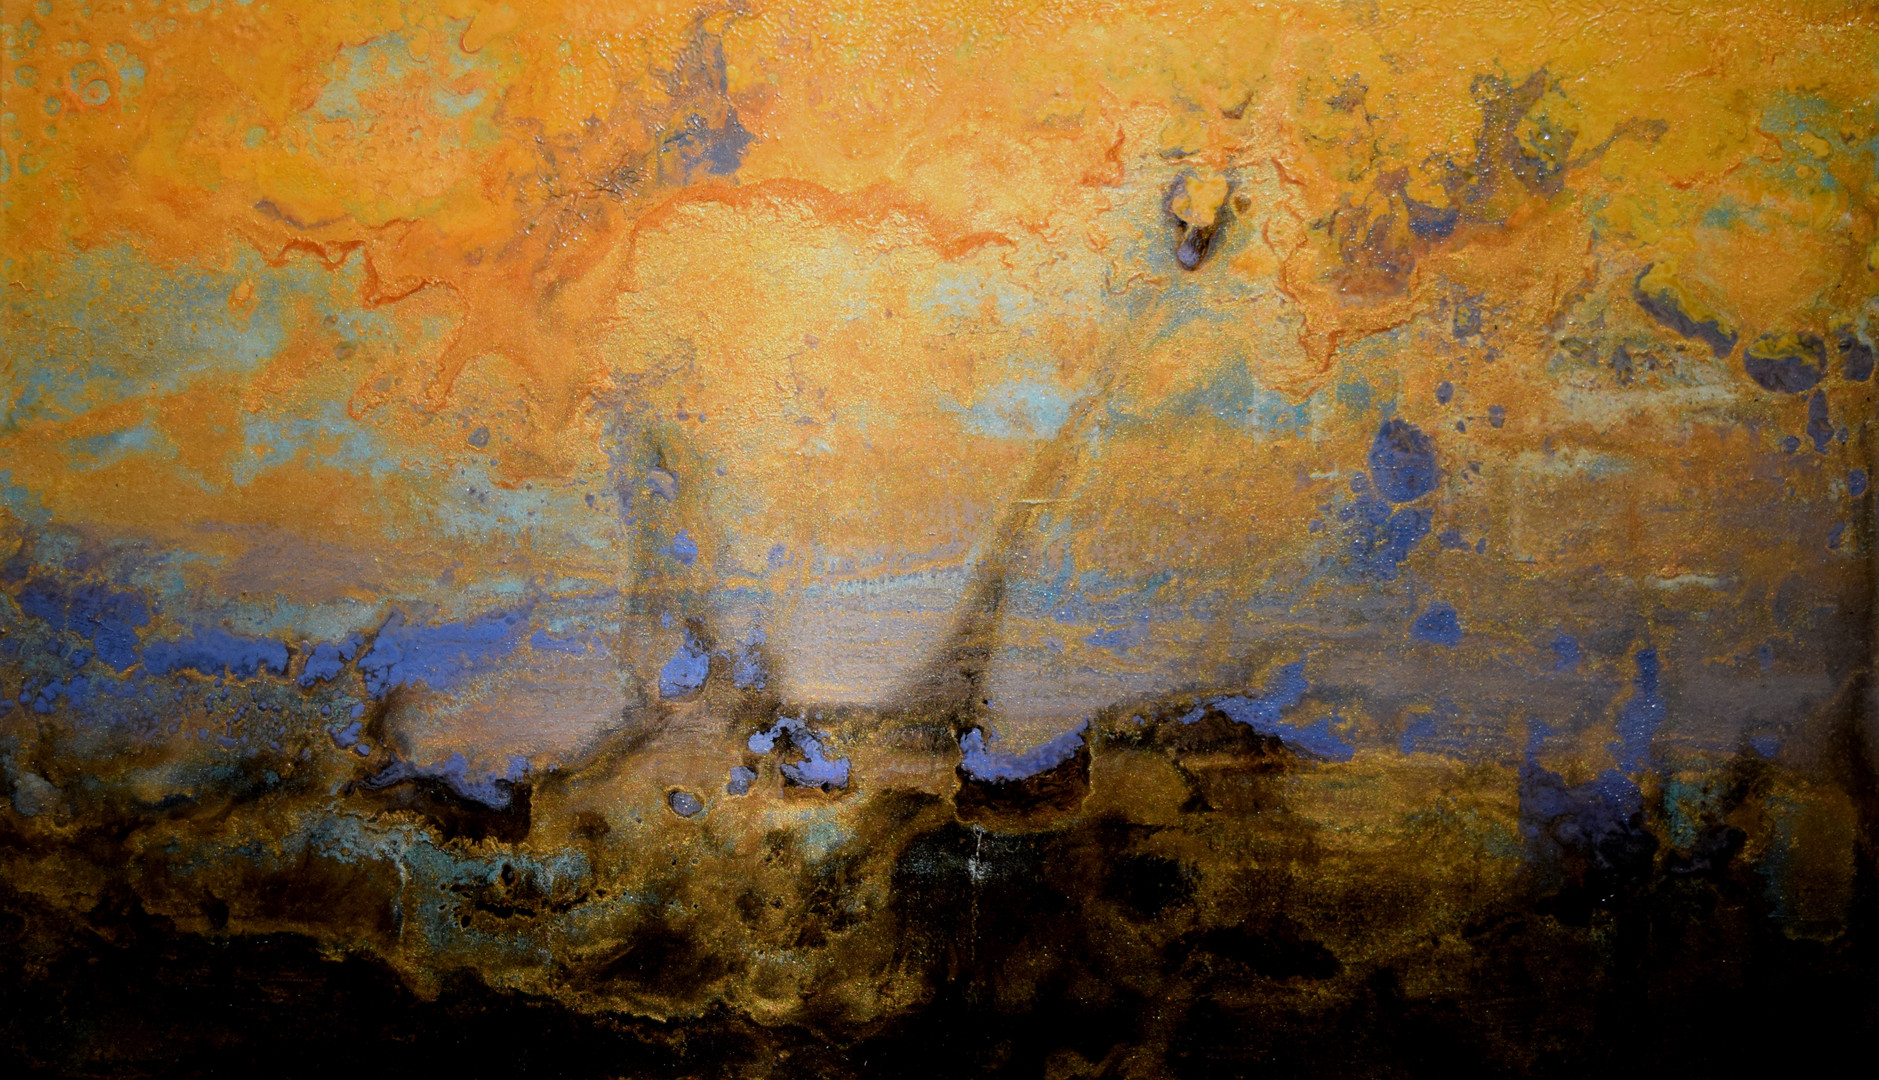 Sunset Drive to the Studio 12 x 24 inches oil and metallic pigment on panel